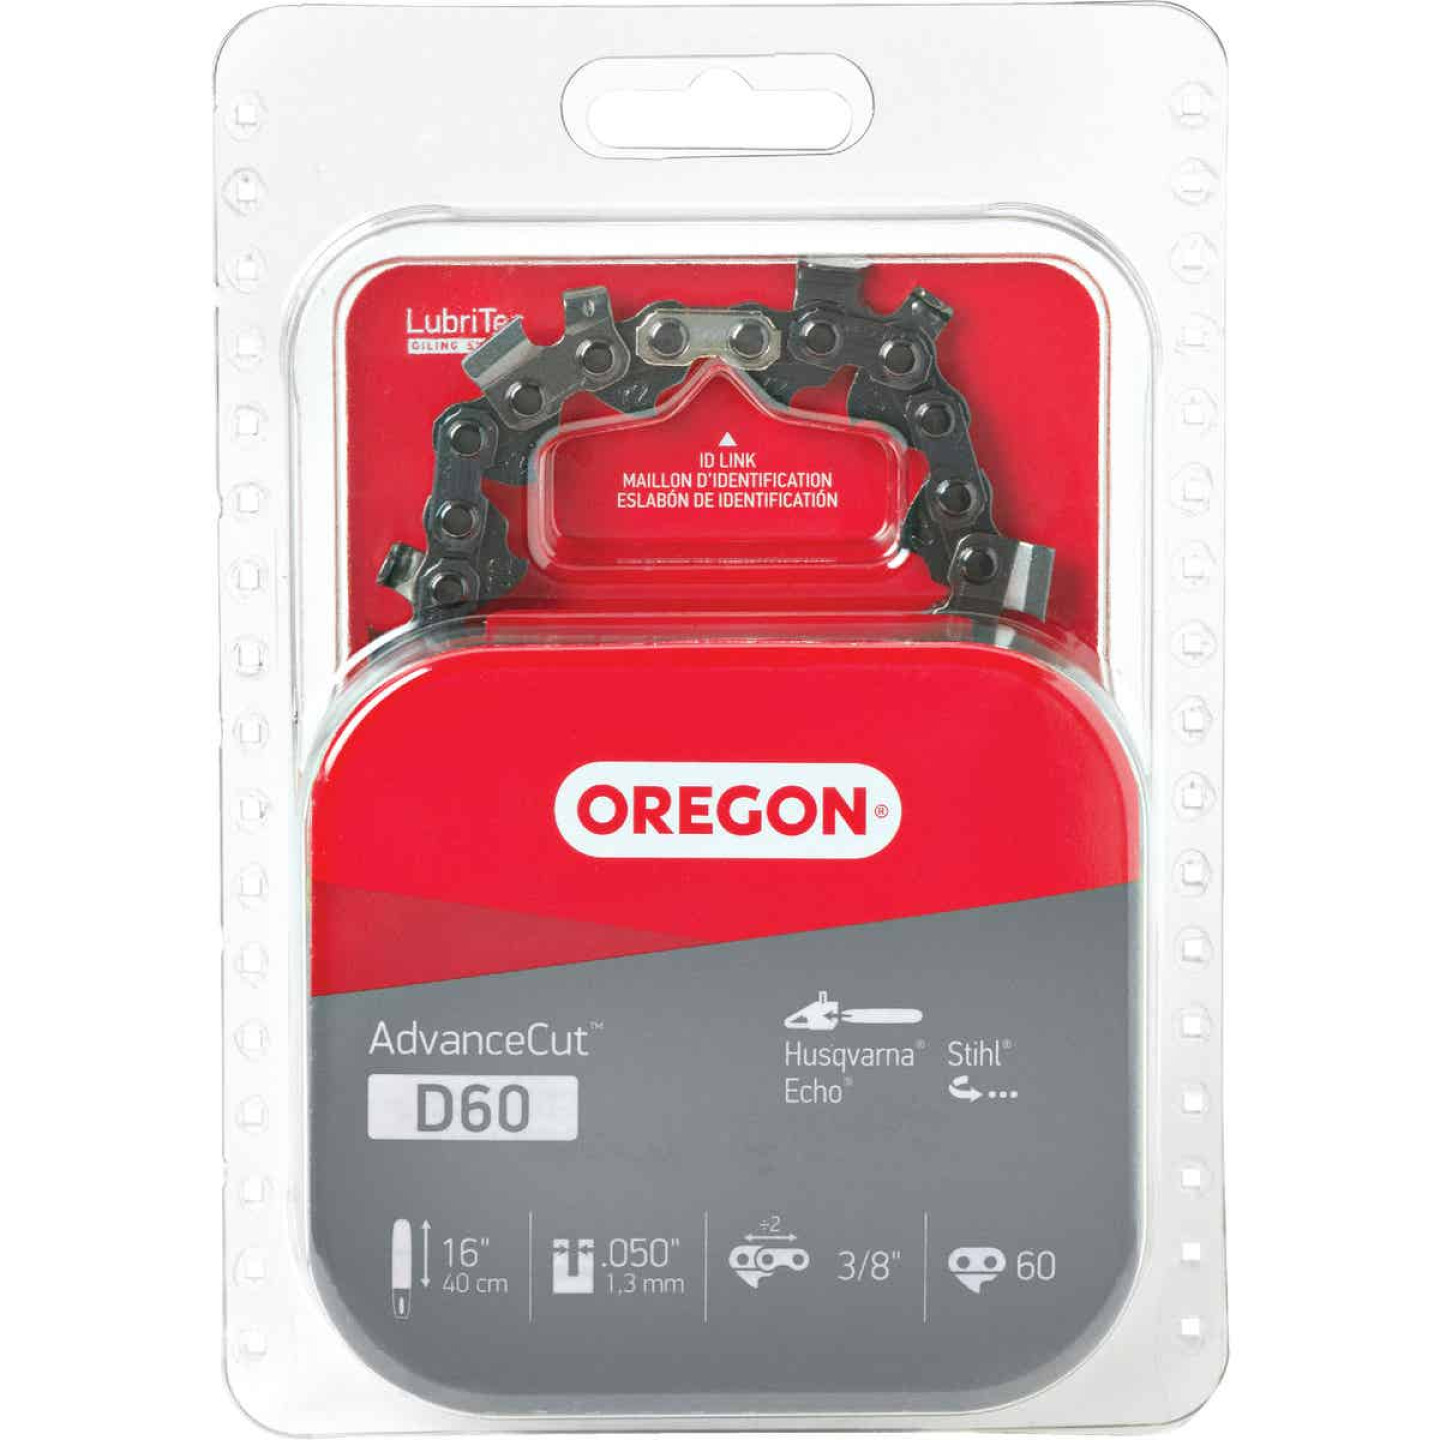 Oregon AdvanceCut D60 16 In. Chainsaw Chain Image 1